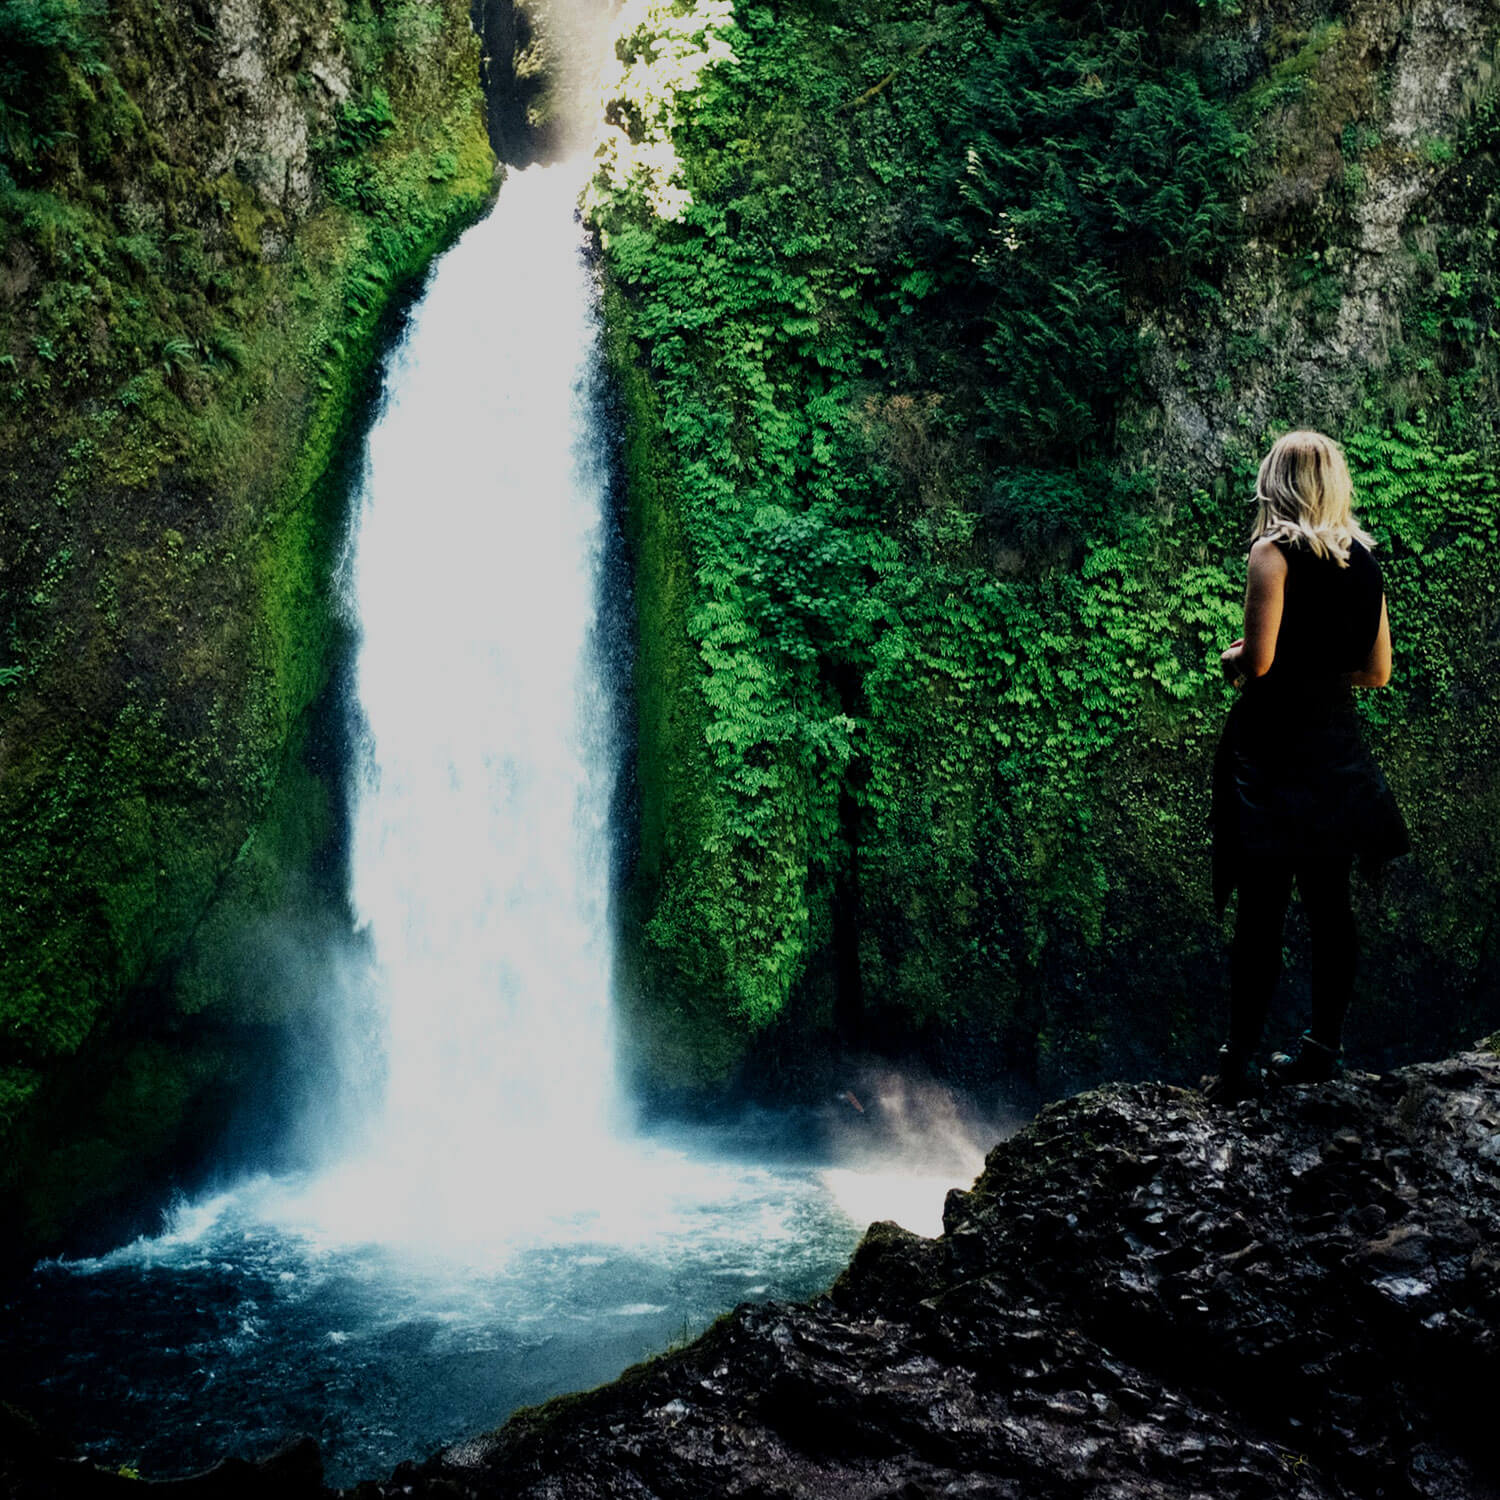 Woman with blonde hair stares at waterfall